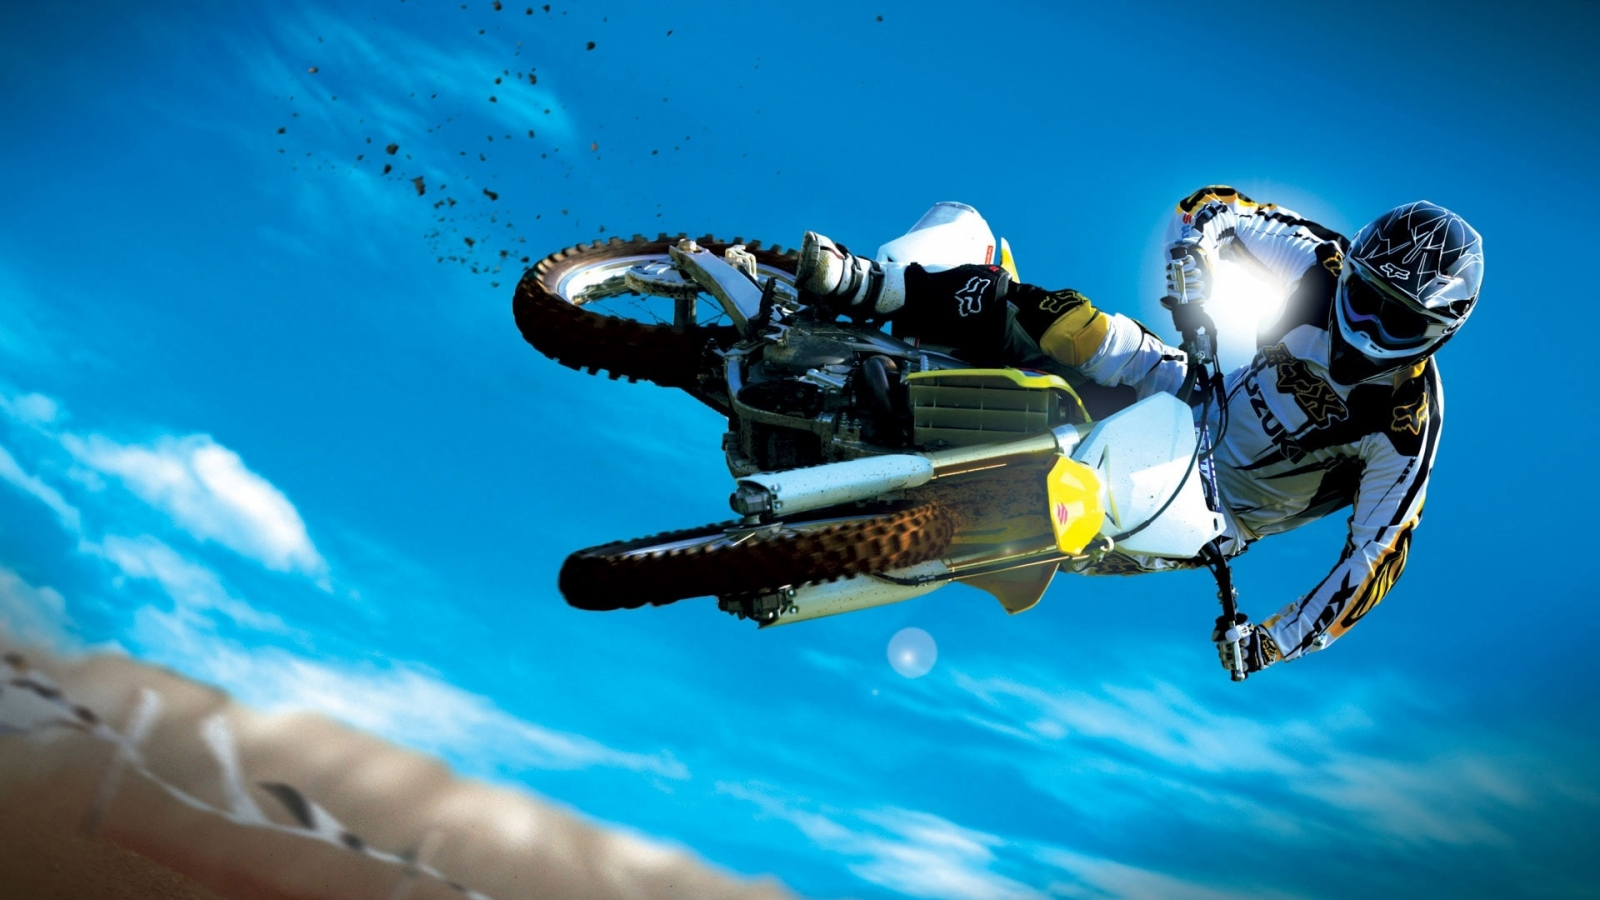 Moto Extreme Sport for 1600 x 900 HDTV resolution